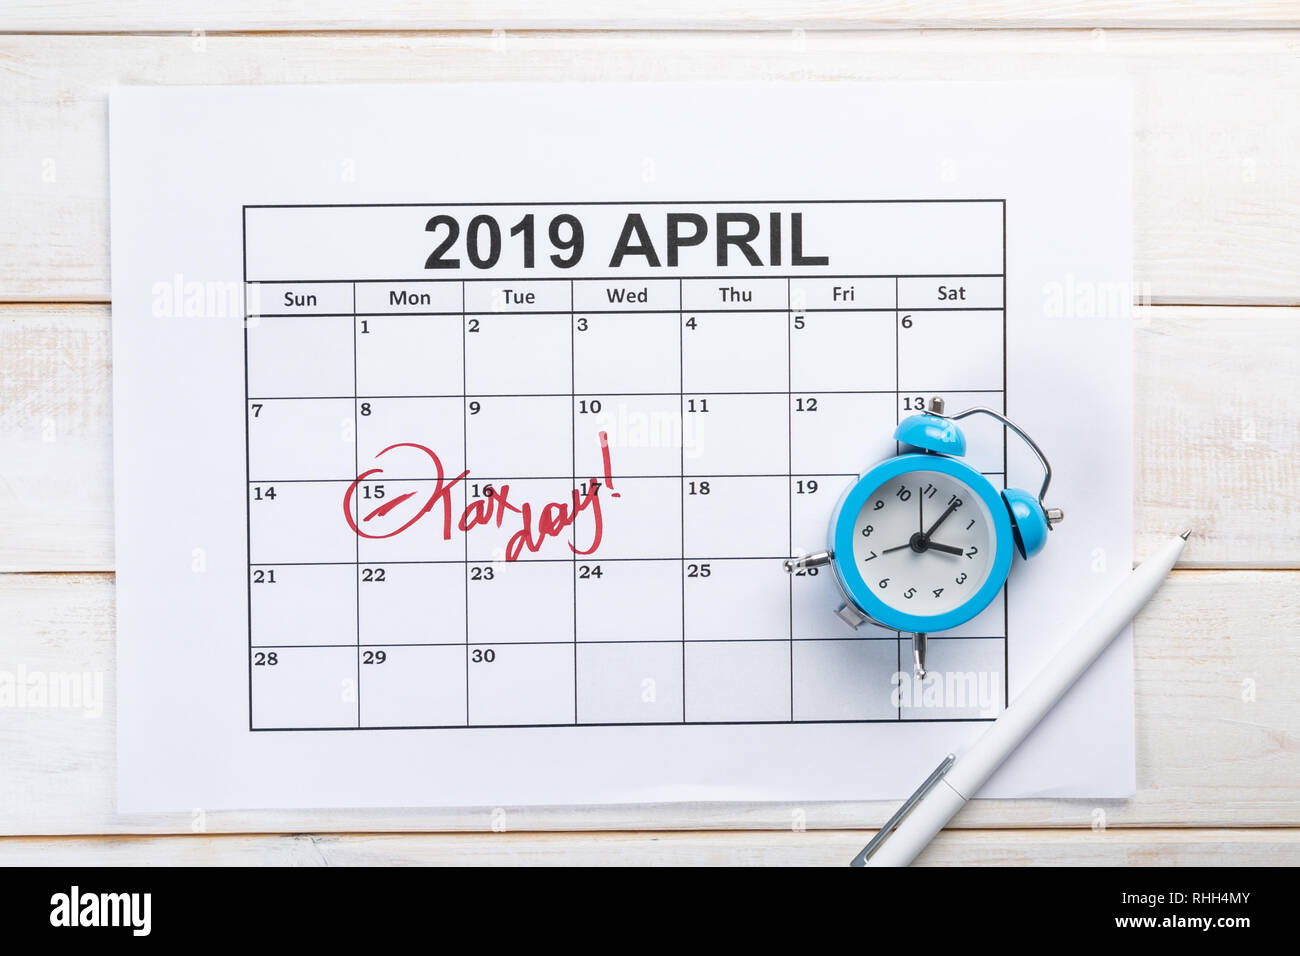 Due Date Calculator Stock Photos & Due Date Calculator Stock